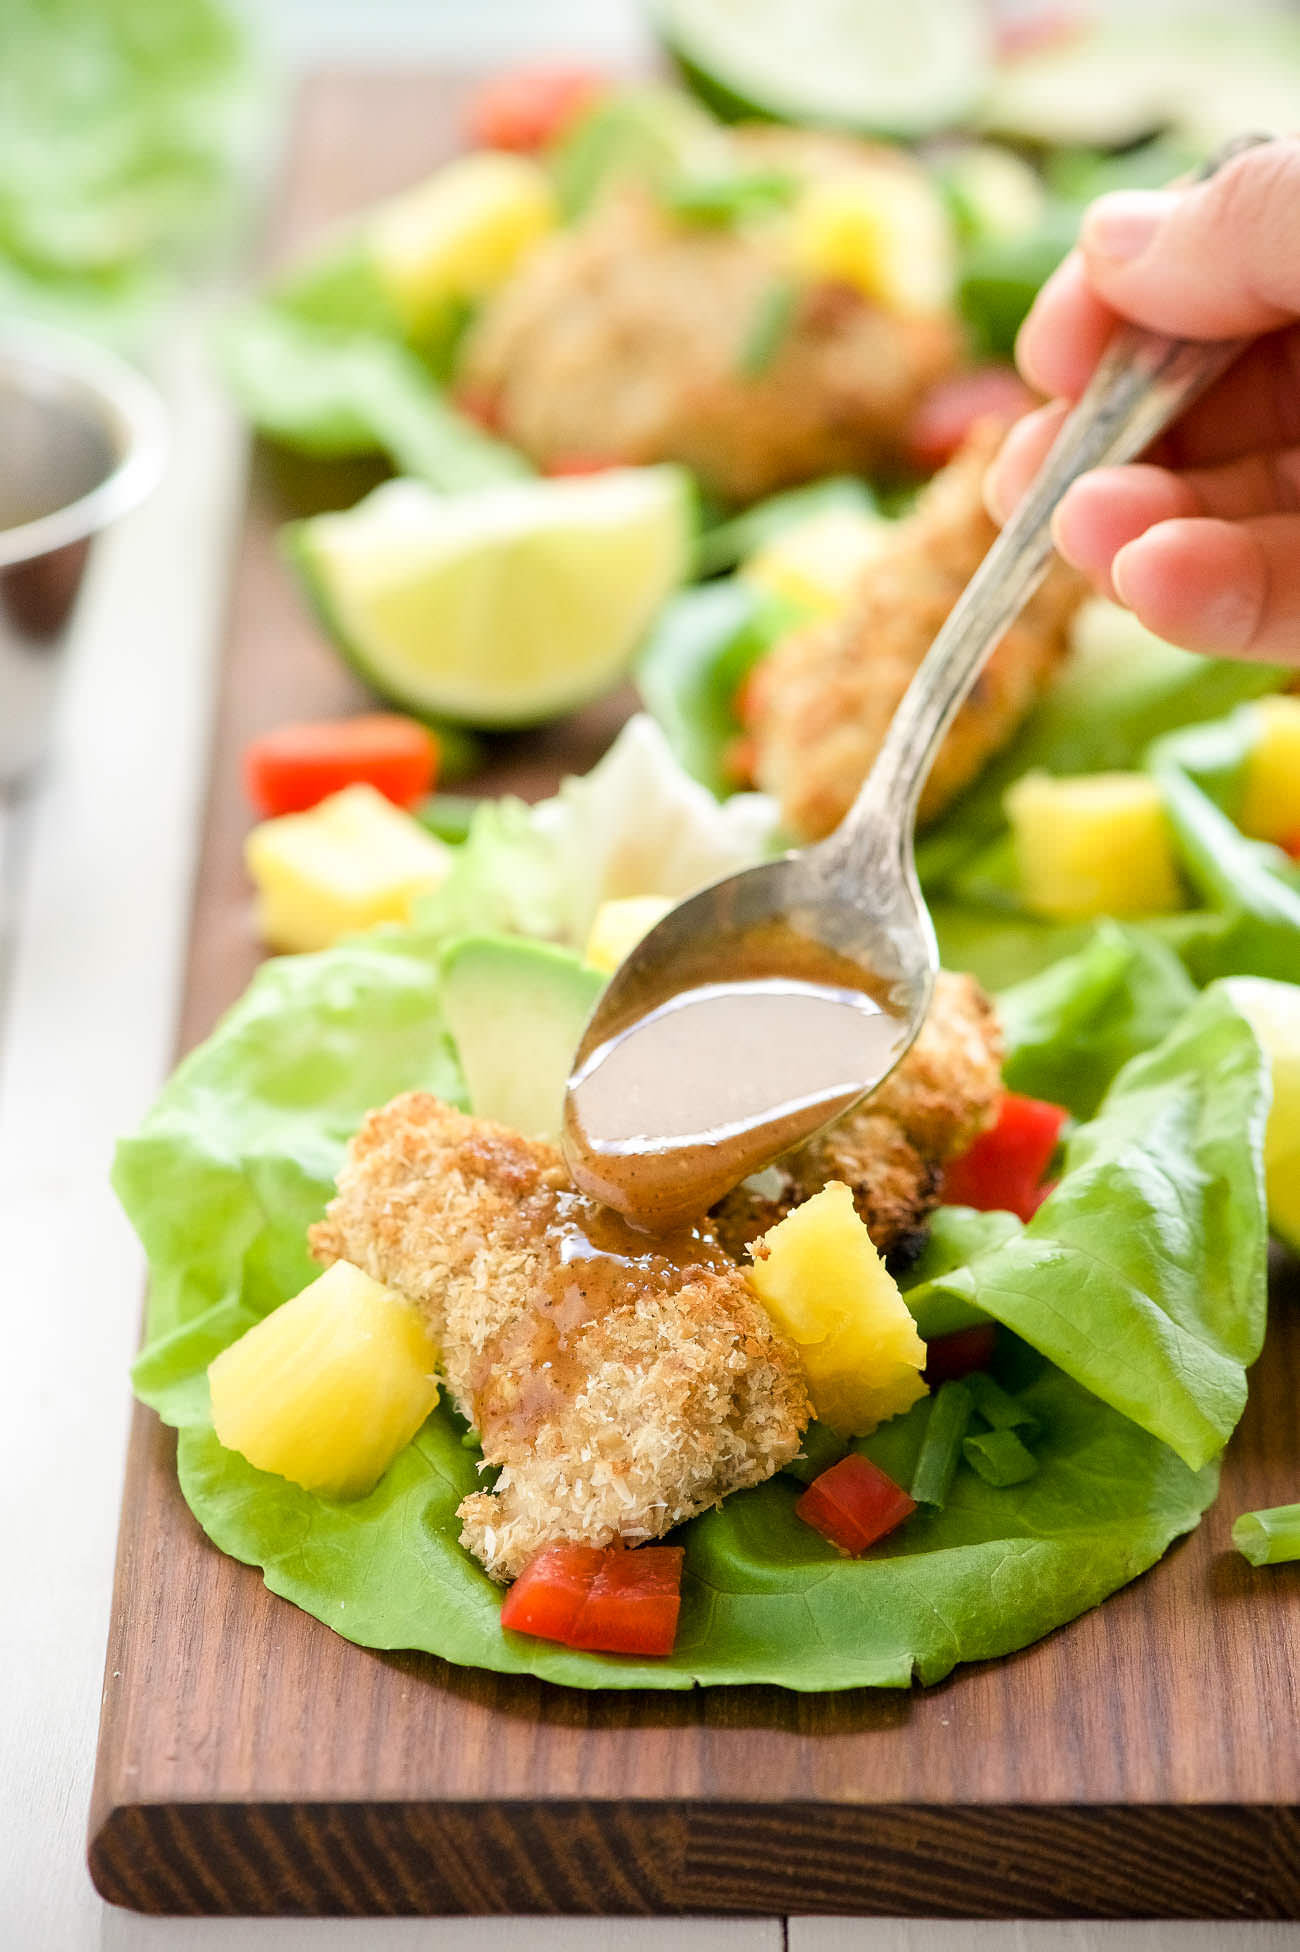 Cashew Coconut Crusted Chicken Lettuce Wraps are our new favorite hand held dinner! Every bite of chicken is encrusted in crunchy cashews and coconut then drizzled with a sweet and spicy Ancho Honey Mustard Sauce!